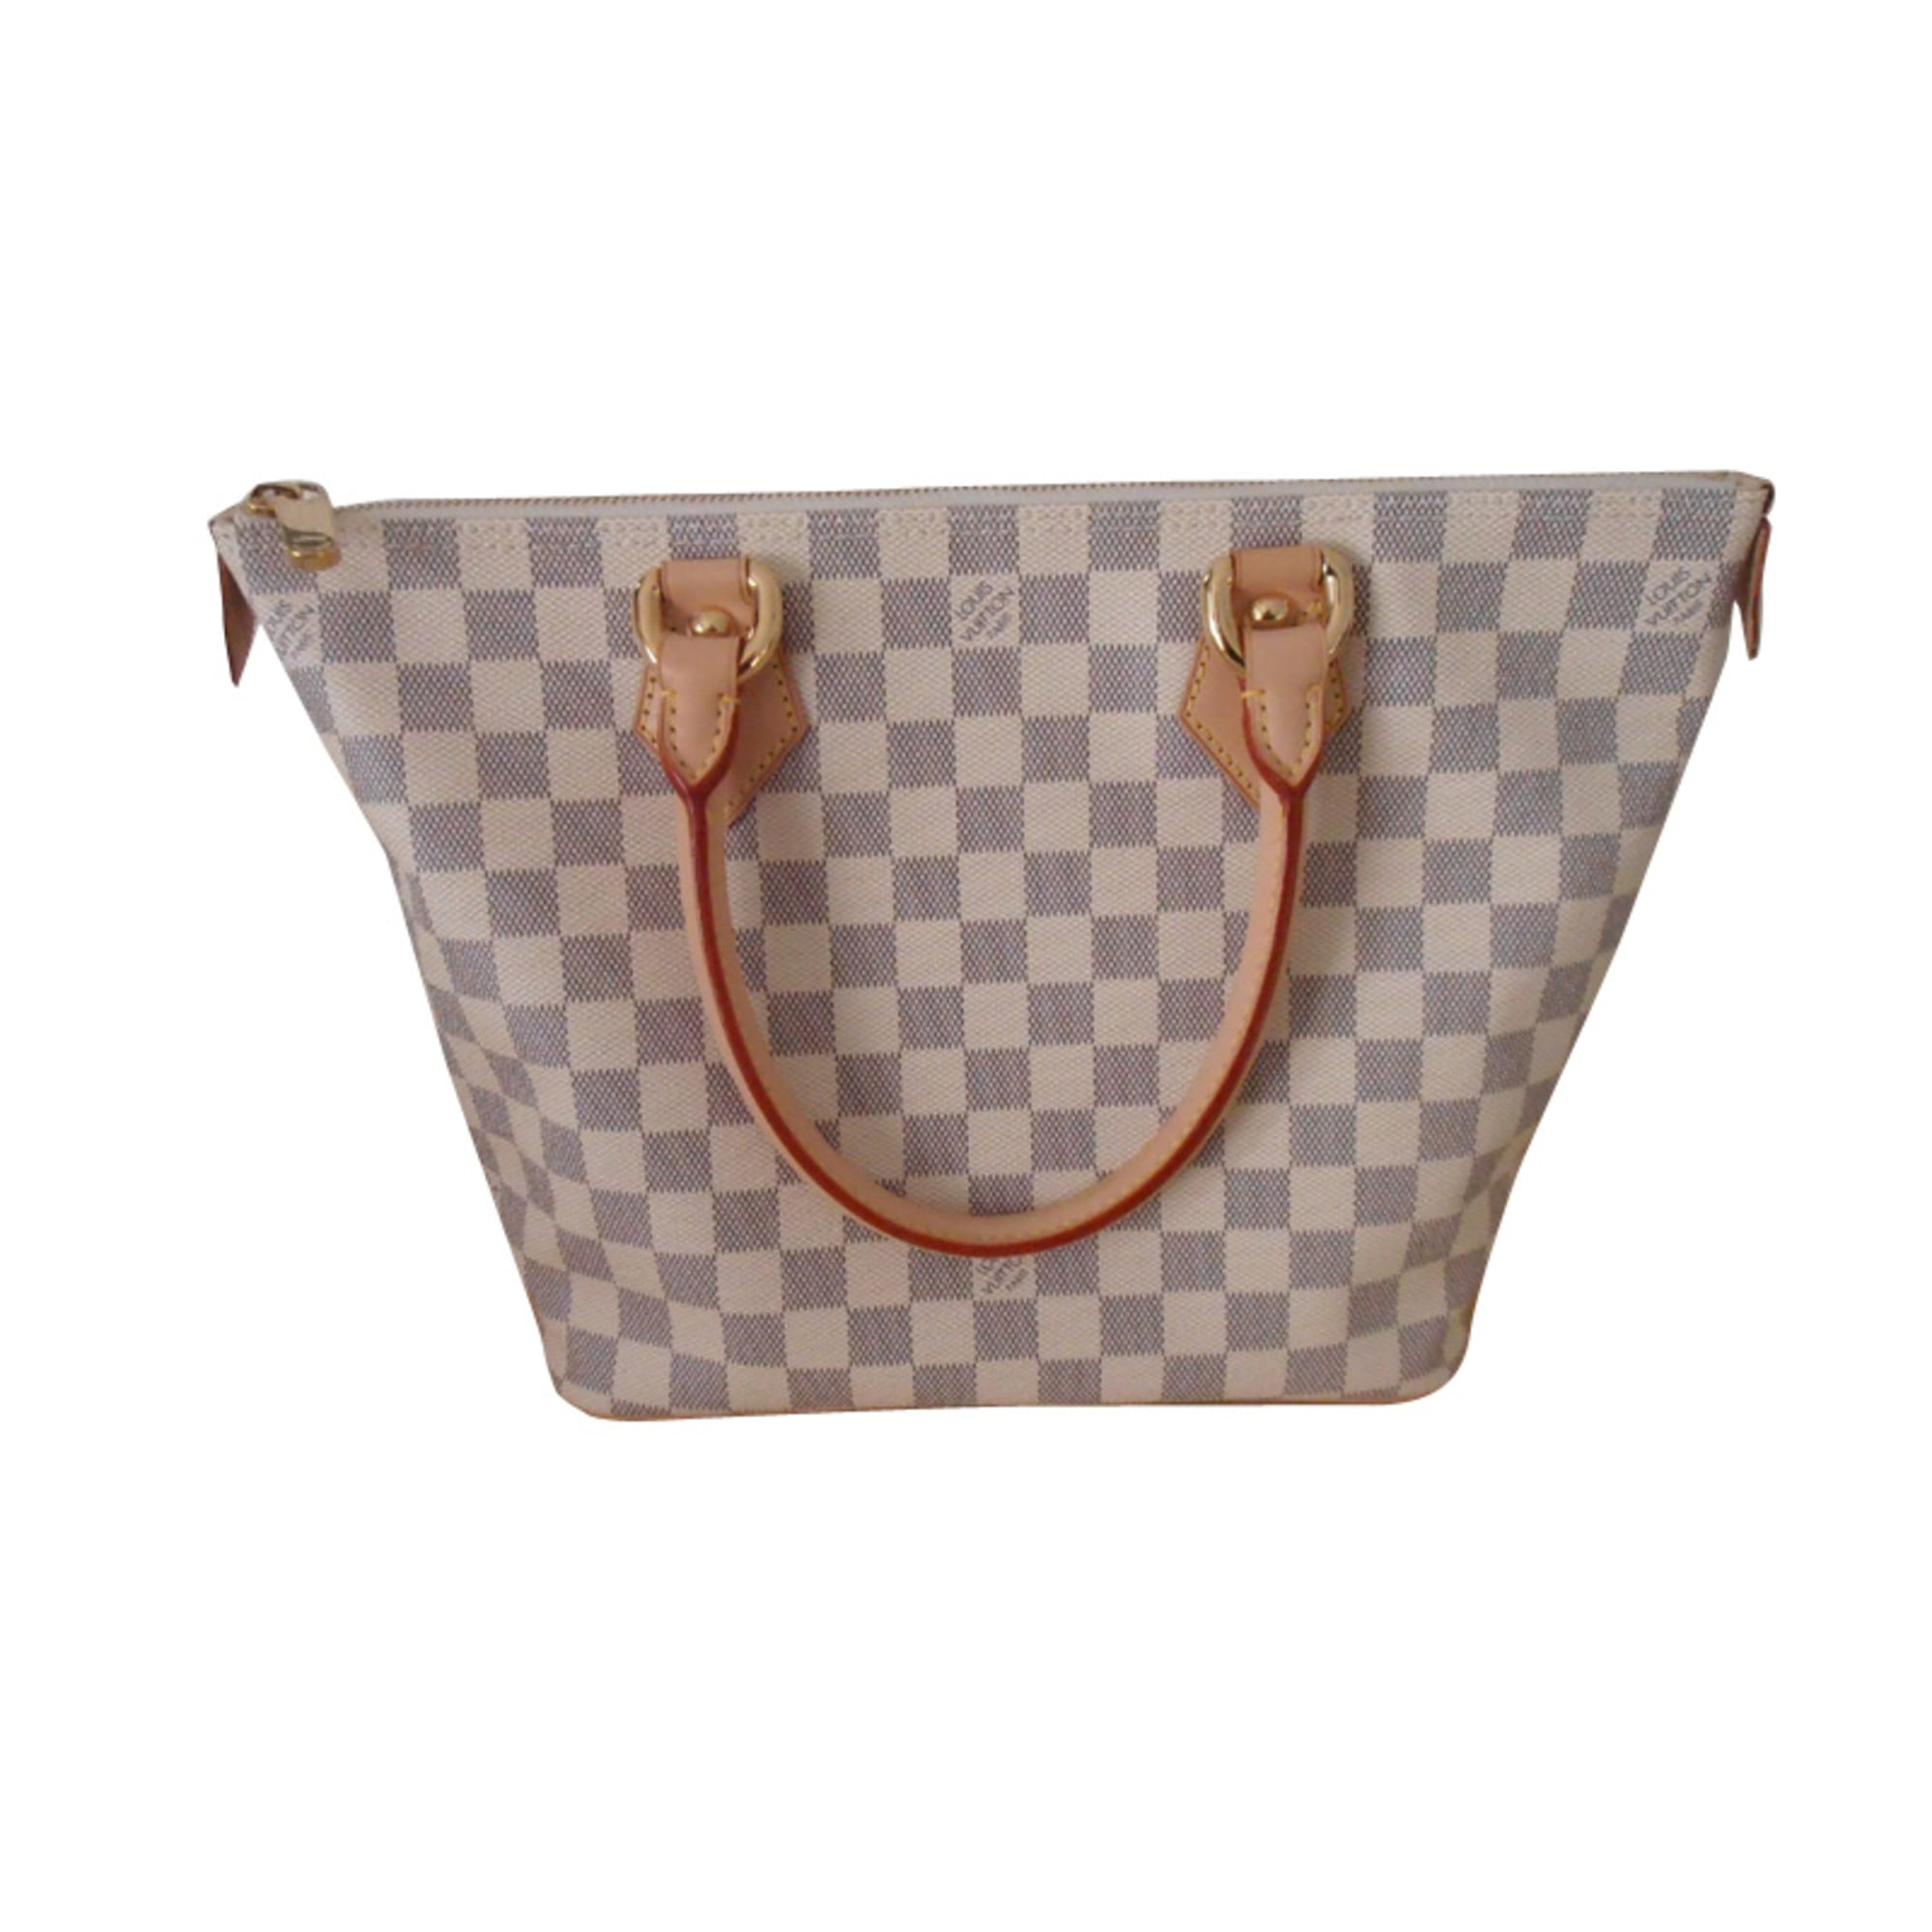 764075563506 Sac à main en cuir LOUIS VUITTON blanc vendu par Shopname110791 - 495645